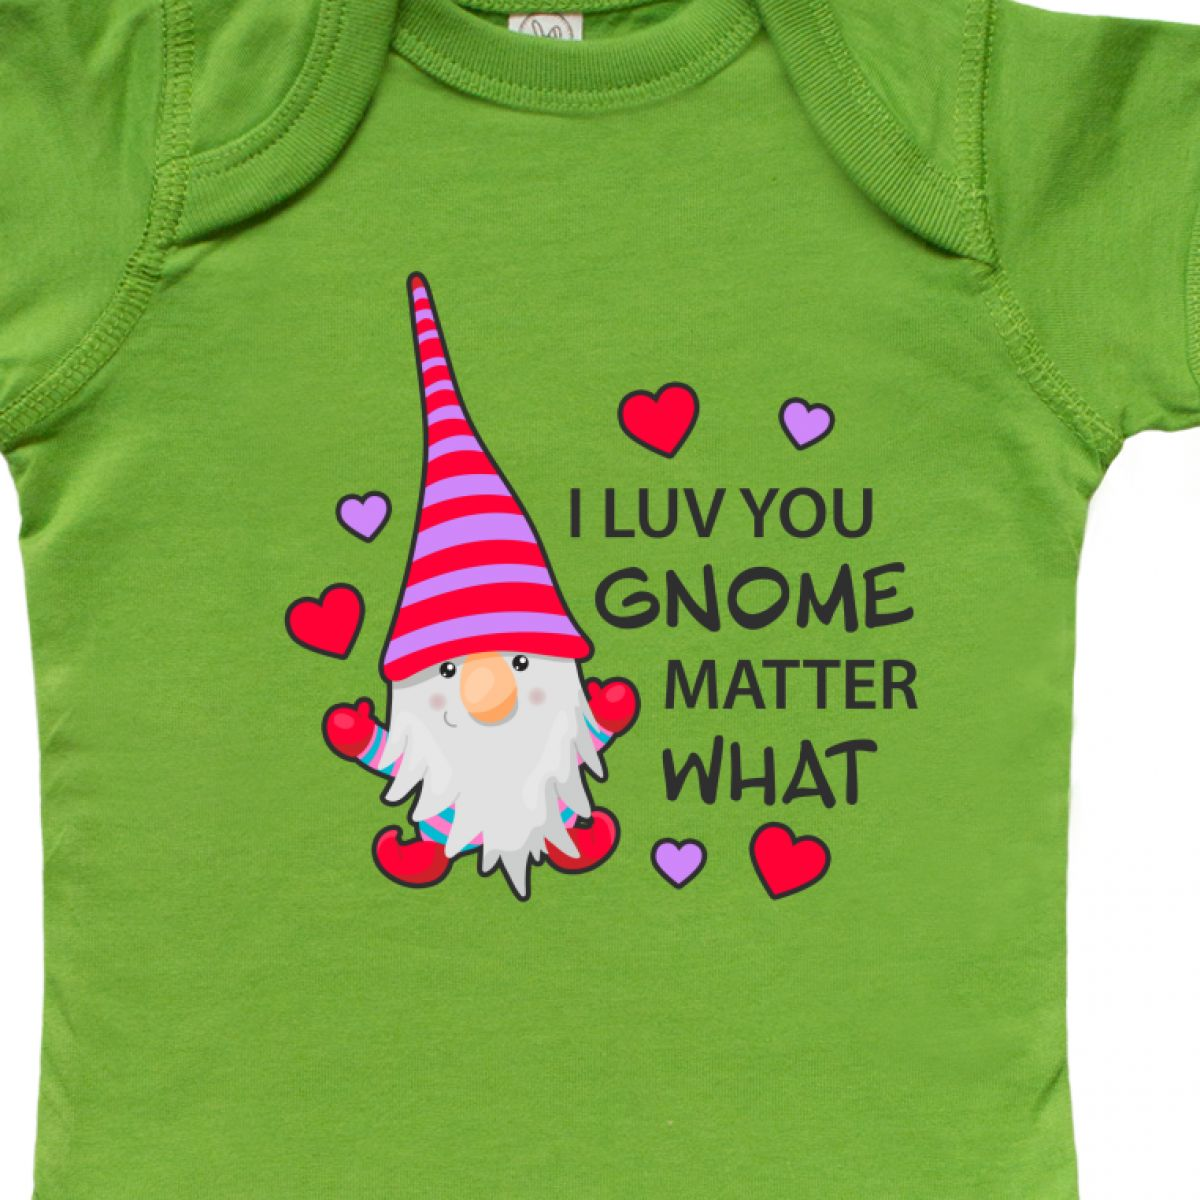 Inktastic-I-Luv-You-Gnome-Matter-What-With-Gnome-And-Hearts-Infant-Creeper-Love 縮圖 4